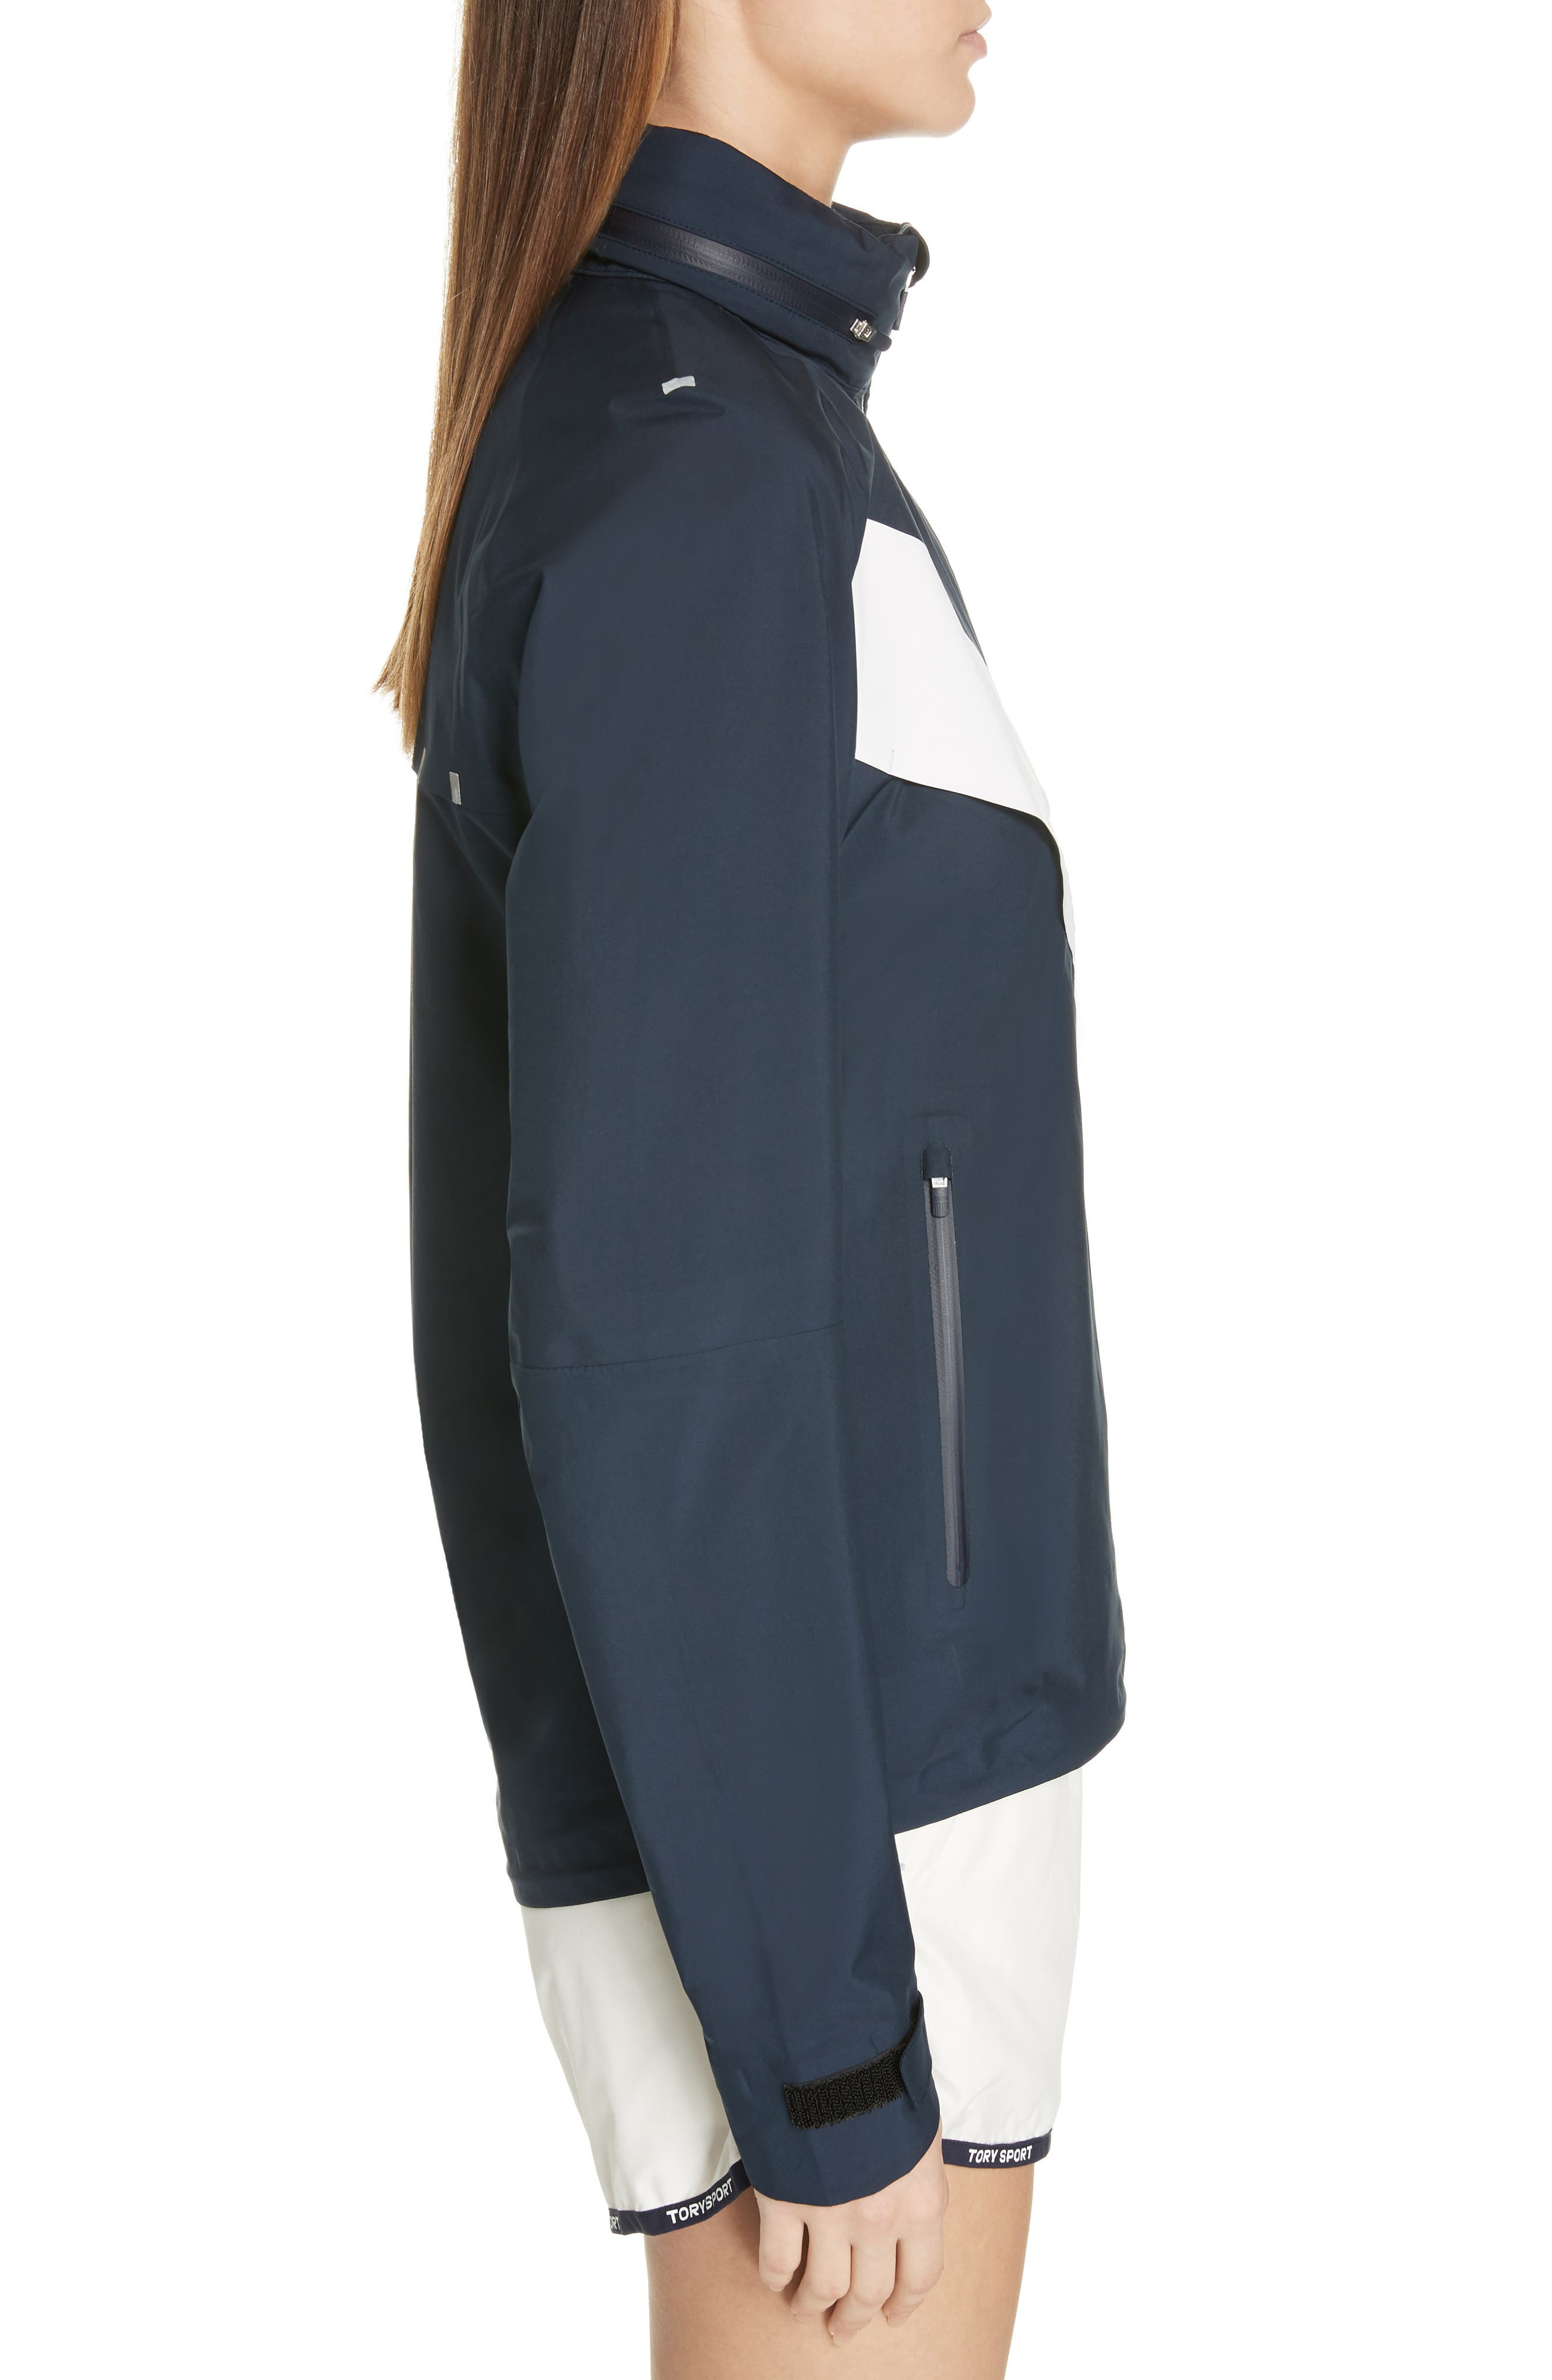 TORY SPORT, All Weather Run Jacket, Alternate thumbnail 4, color, TORY NAVY/ WHITE SNOW